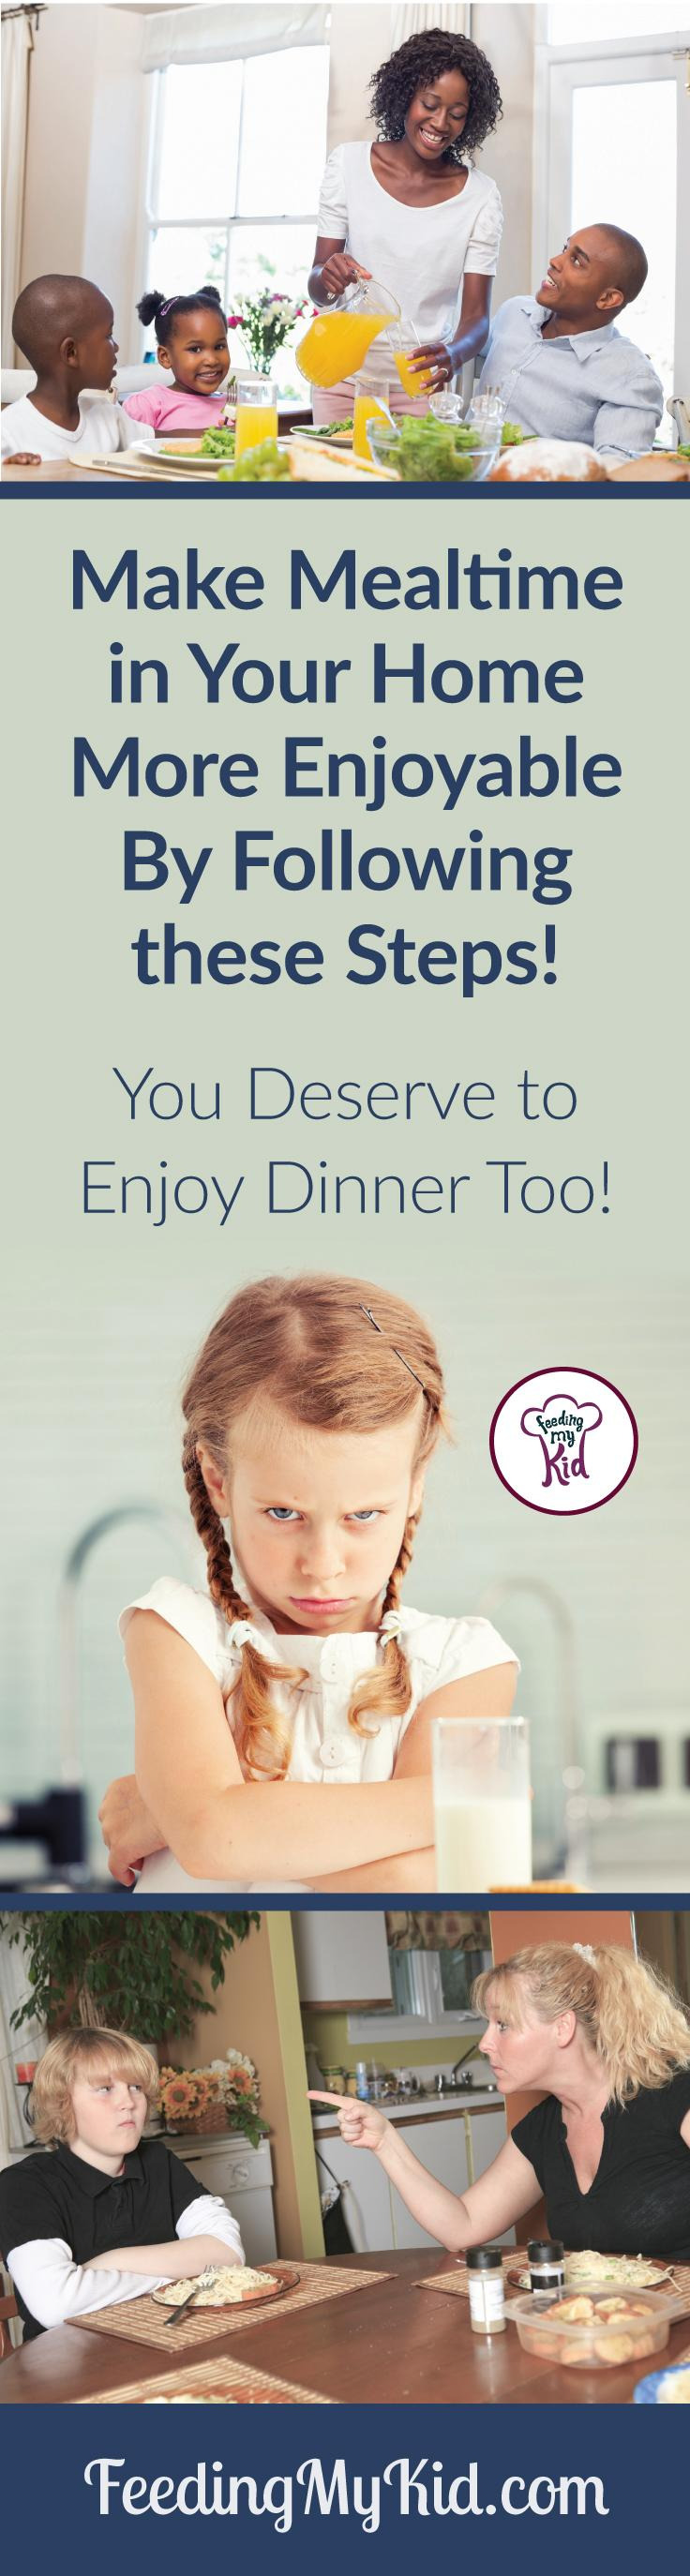 How to start enjoying mealtimes as a family